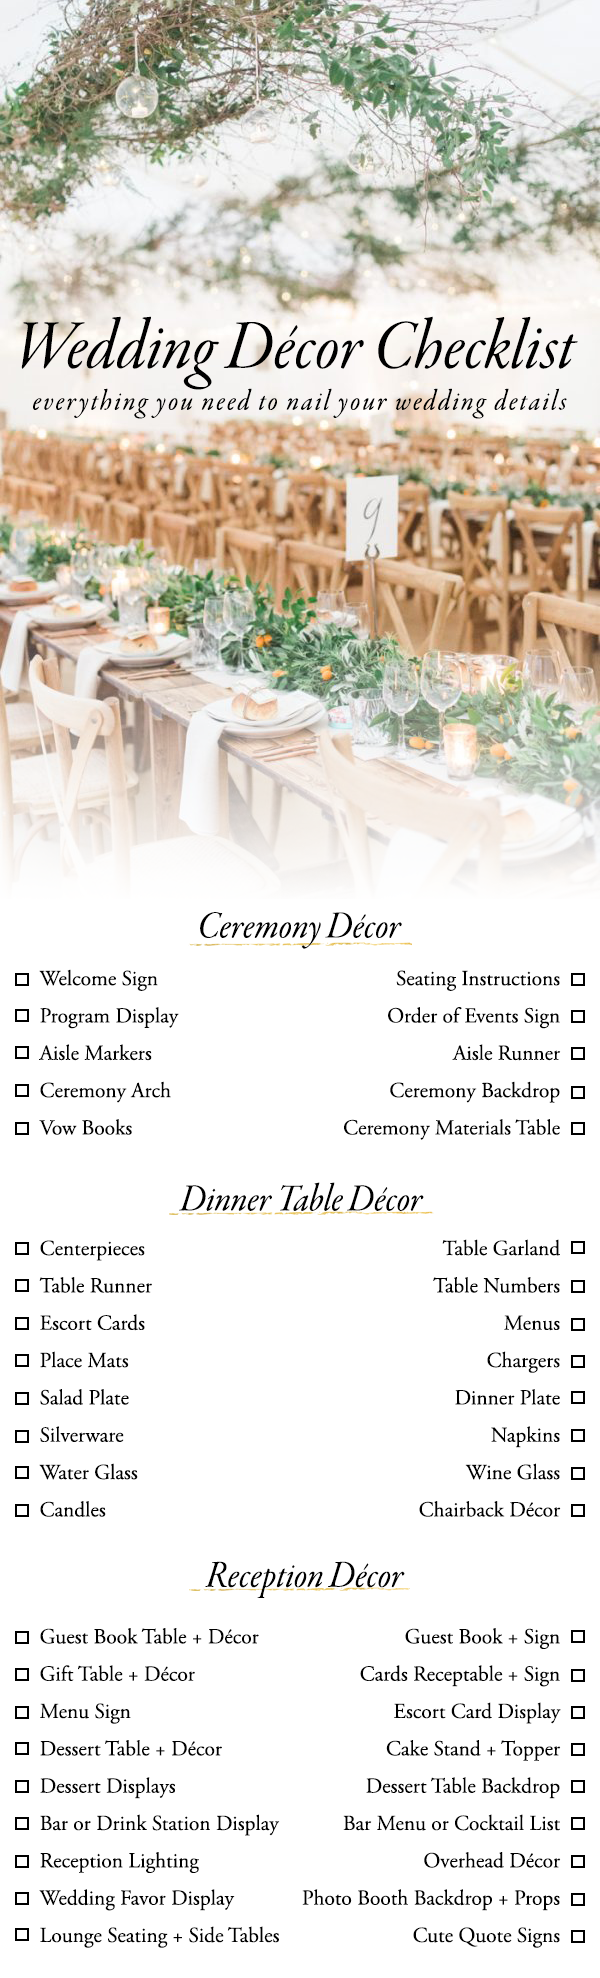 Wedding decor images  Use This Wedding Décor Checklist to Help You Nail Every Detail